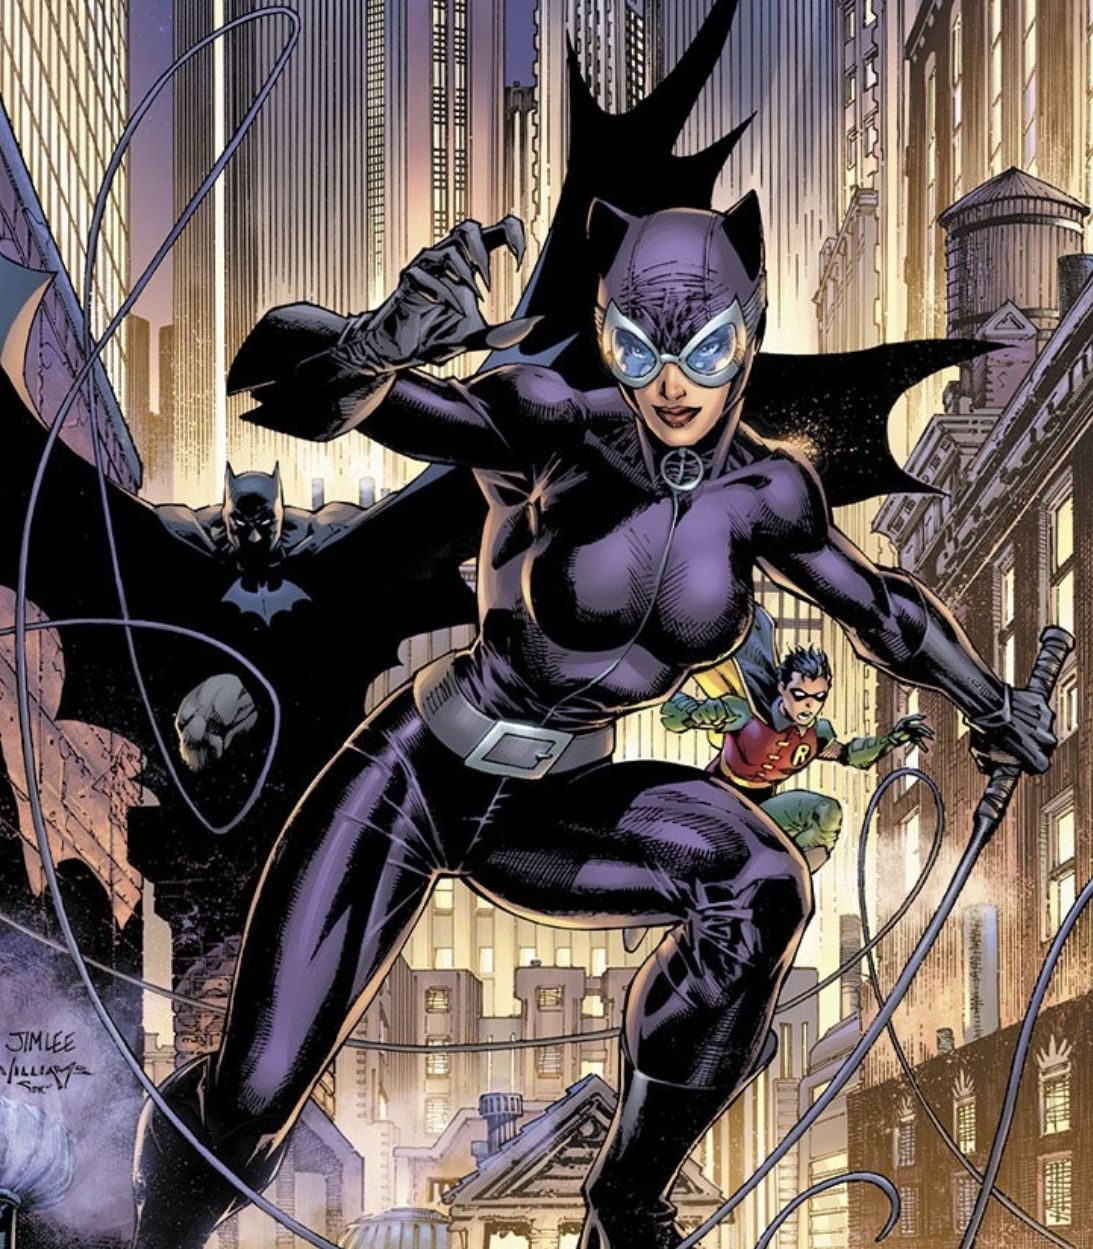 Catwoman 80th Anniversary #1 Jim Lee 2000/'s Variant Cover very fine condition